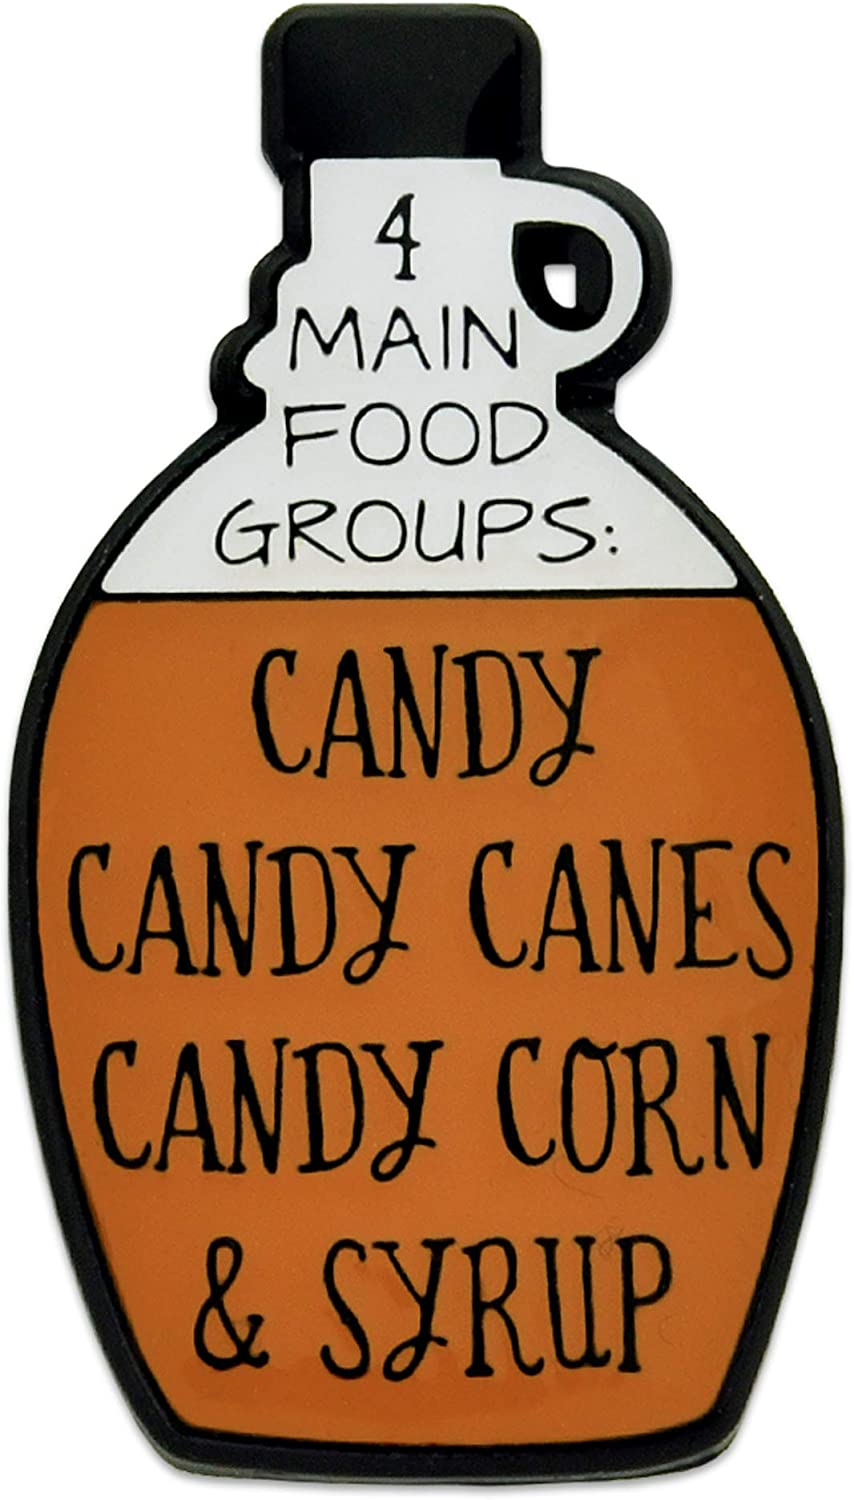 PinMart 4 Main Food Groups Syrup Candy Funny Enamel Lapel Pin